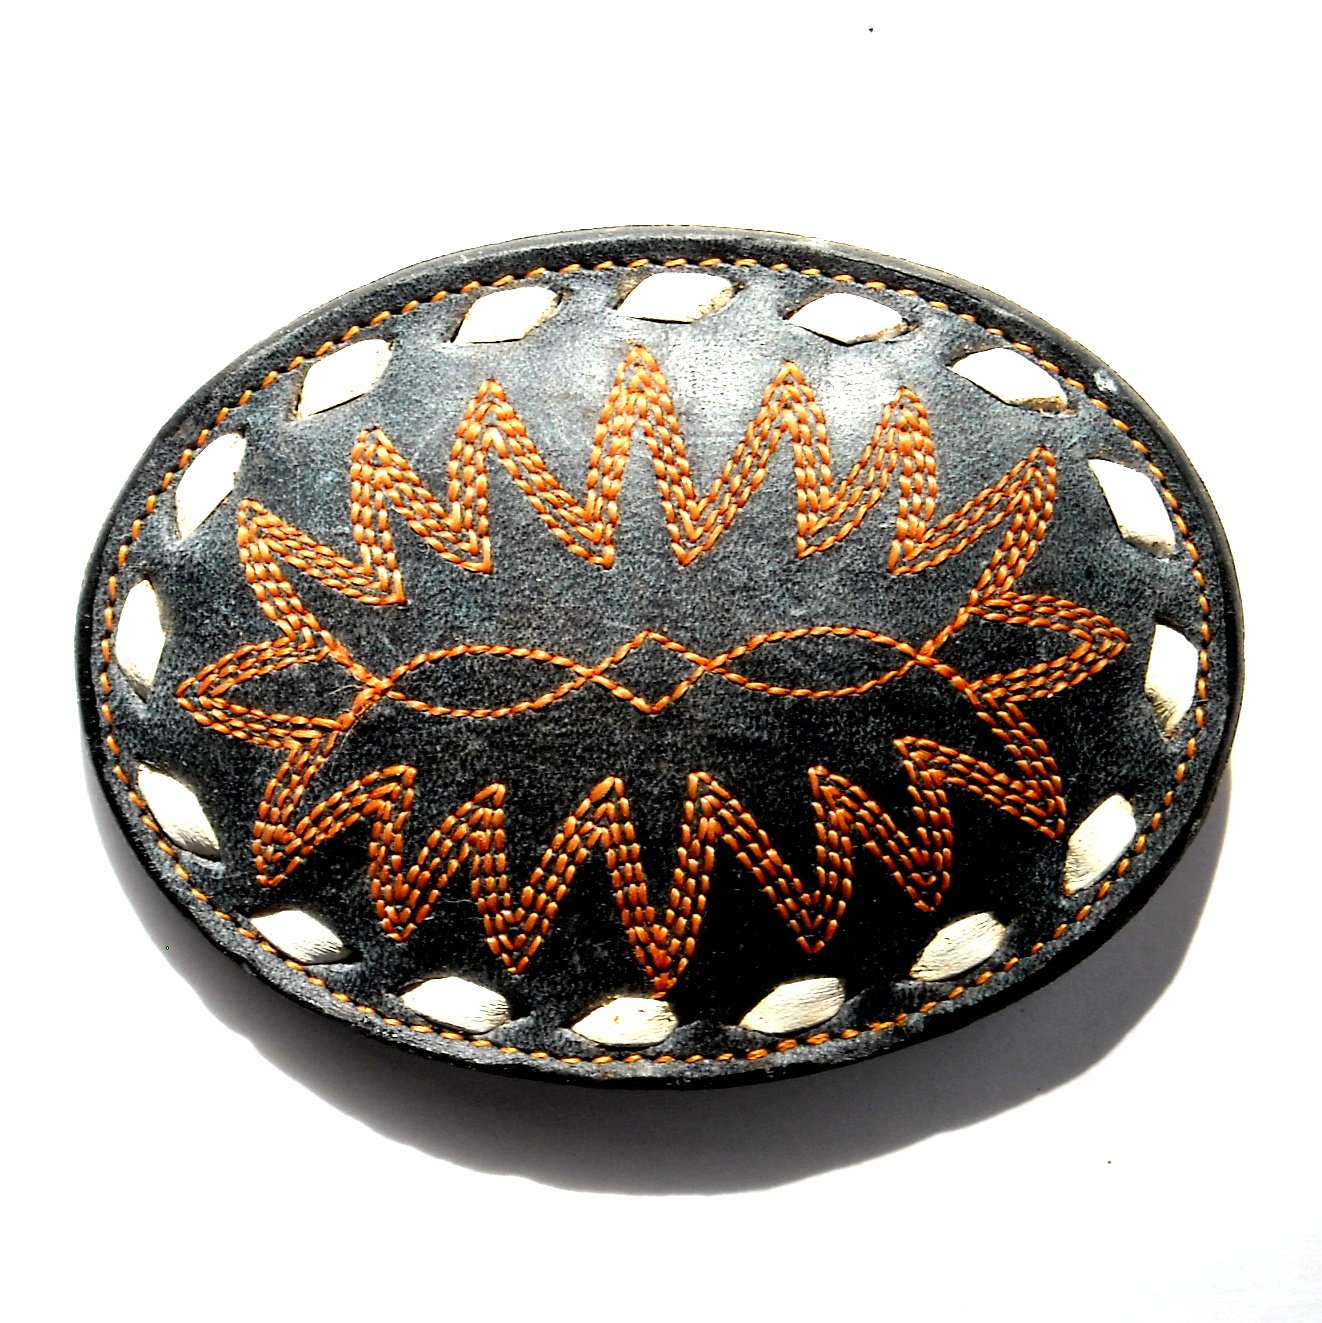 Tony Lama Embroidered Geometric Designs White Stitching Black Leather belt buckle